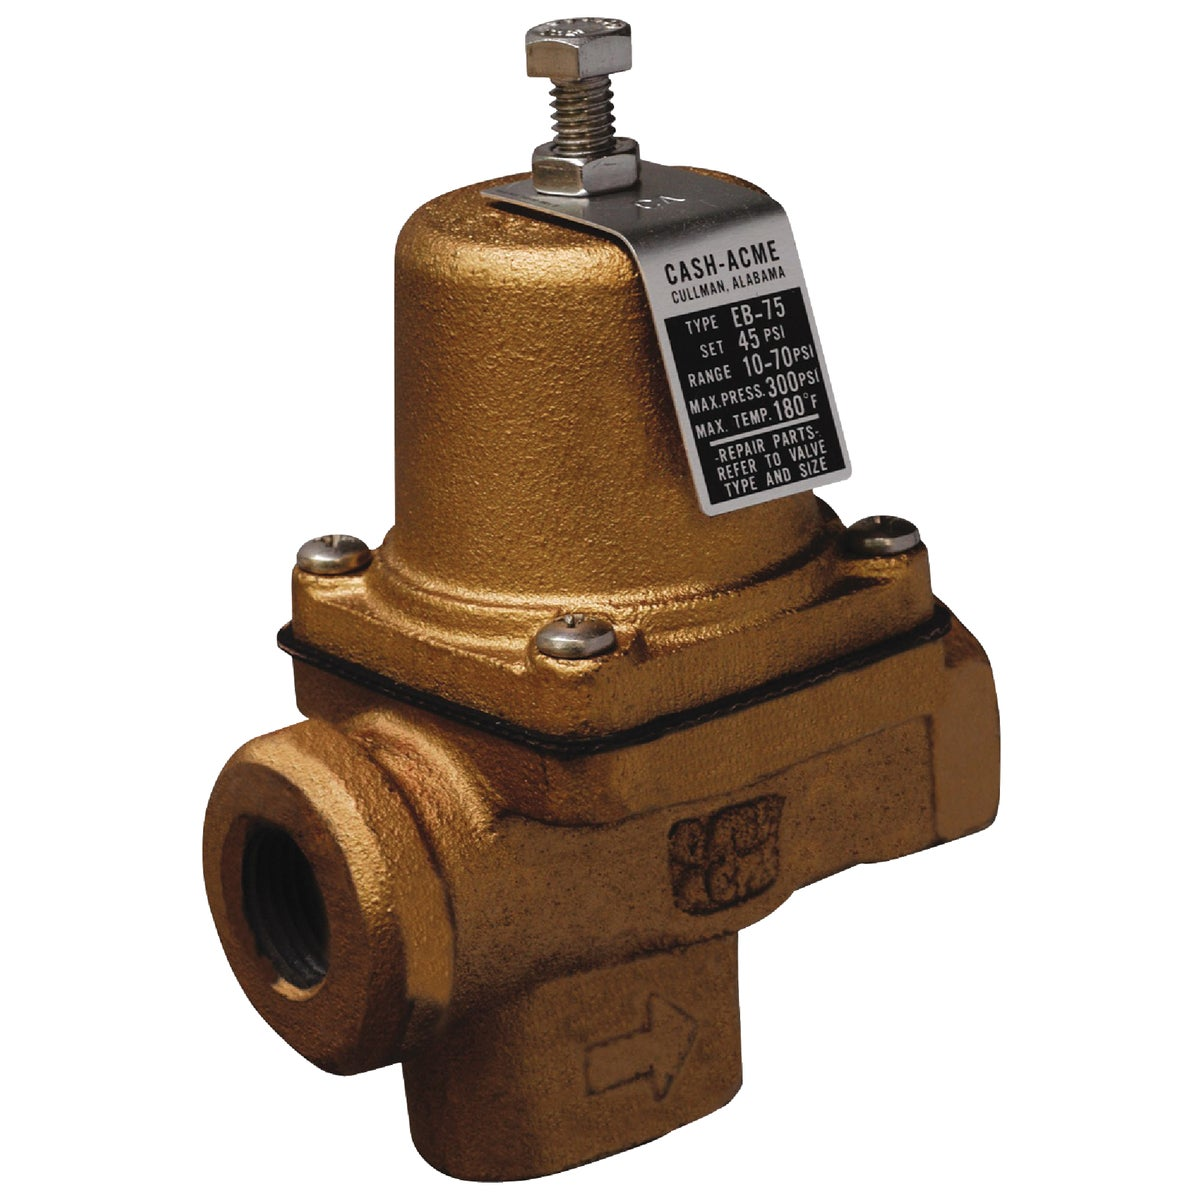 3/4 PRESSURE REDUC VALVE - 23000-0045 by Cash Acme